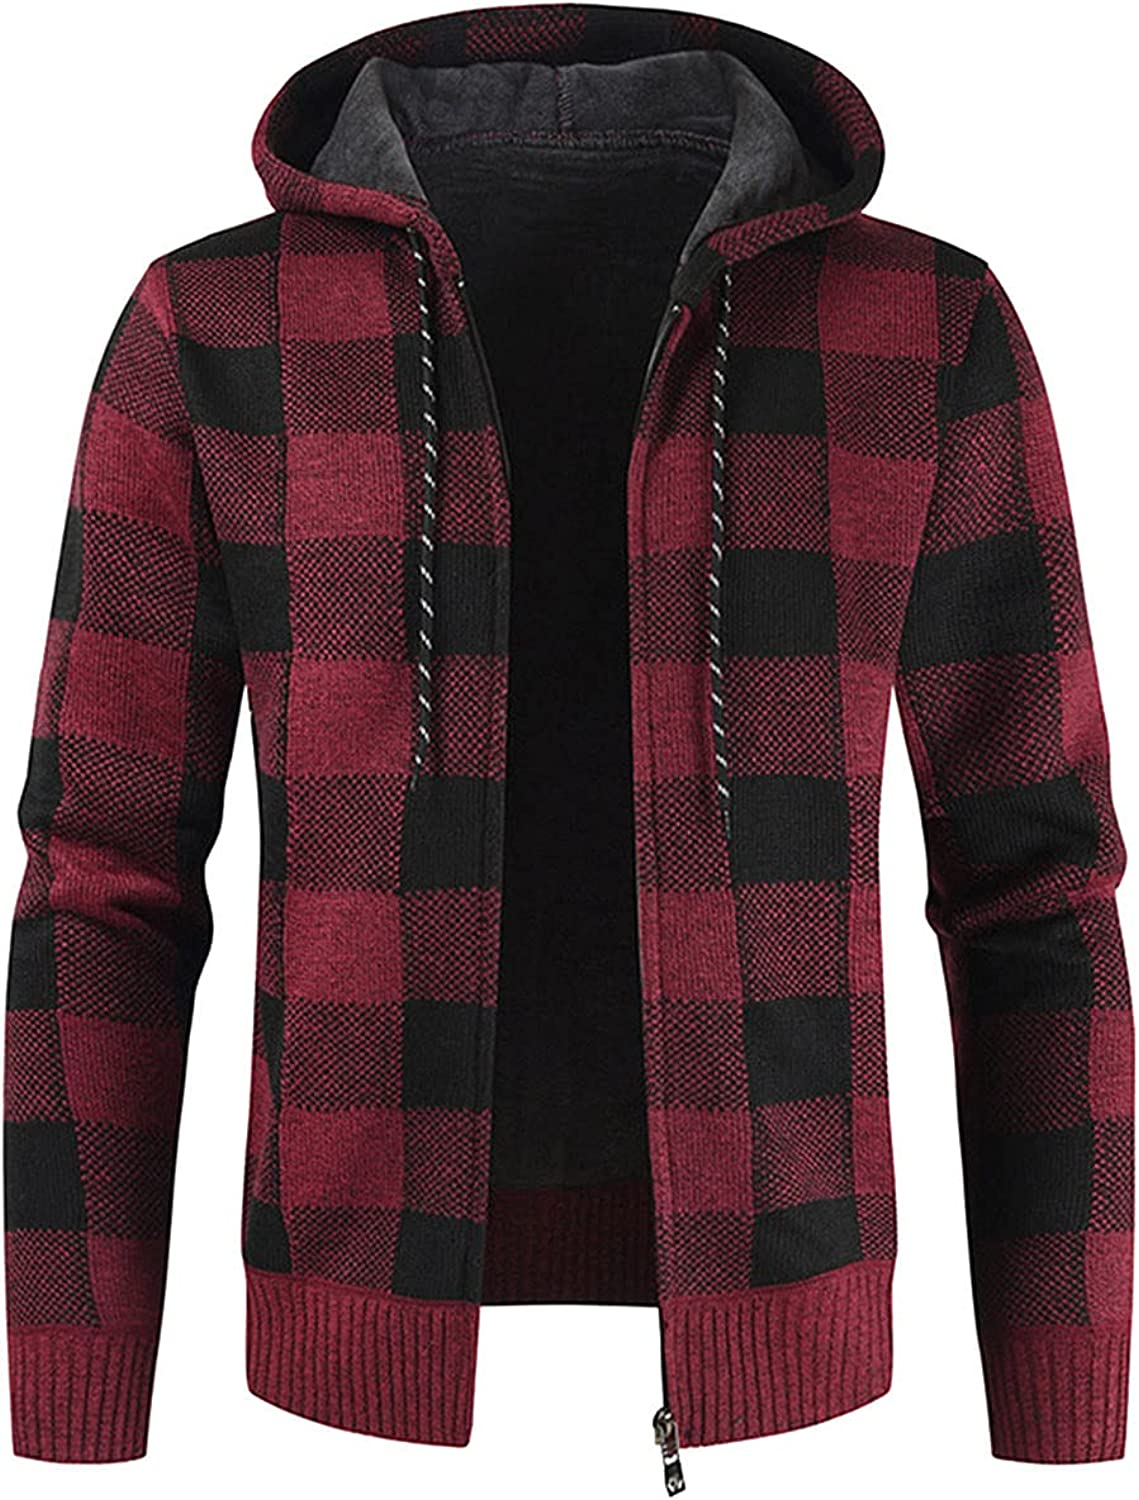 Men's Winter Hooded Jacket Fashion Plaid Long Sleeve Zipped Loose Coat Casual Knitted Warm Outwear